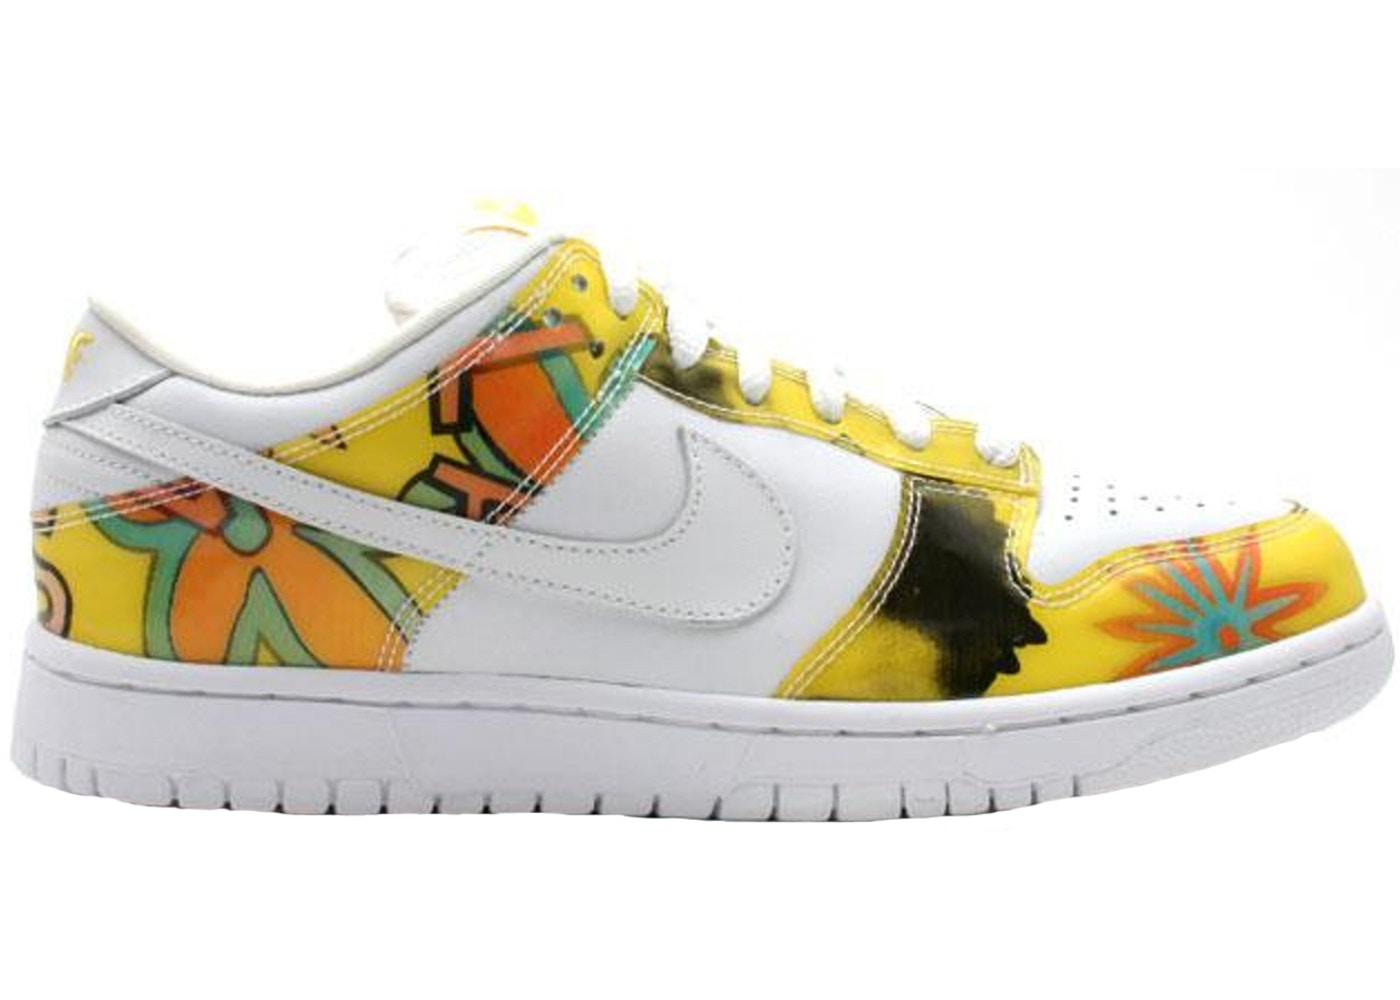 quality design a982b f74e6 Nike Dunk SB Low De La Soul (2005) - 304292-171